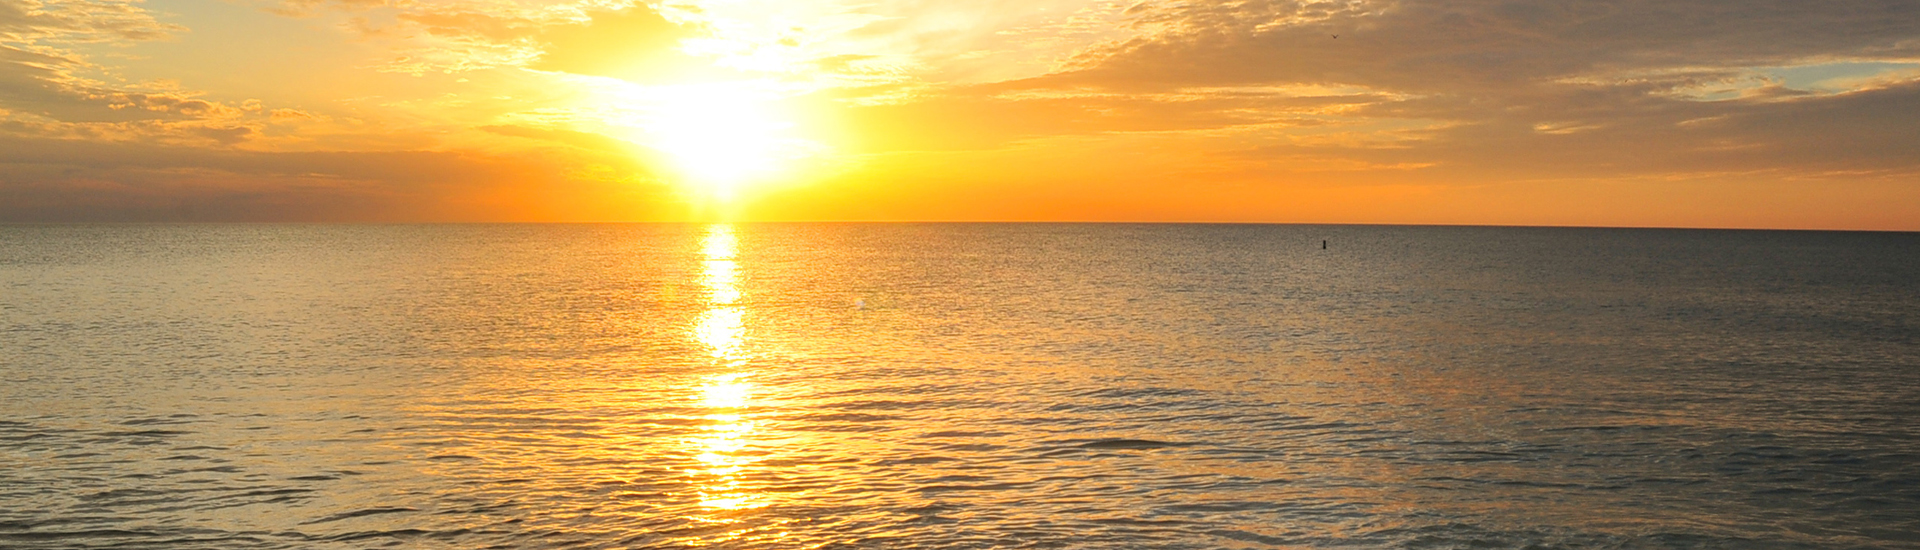 SUNSET 1920×550 WEB 300dpi